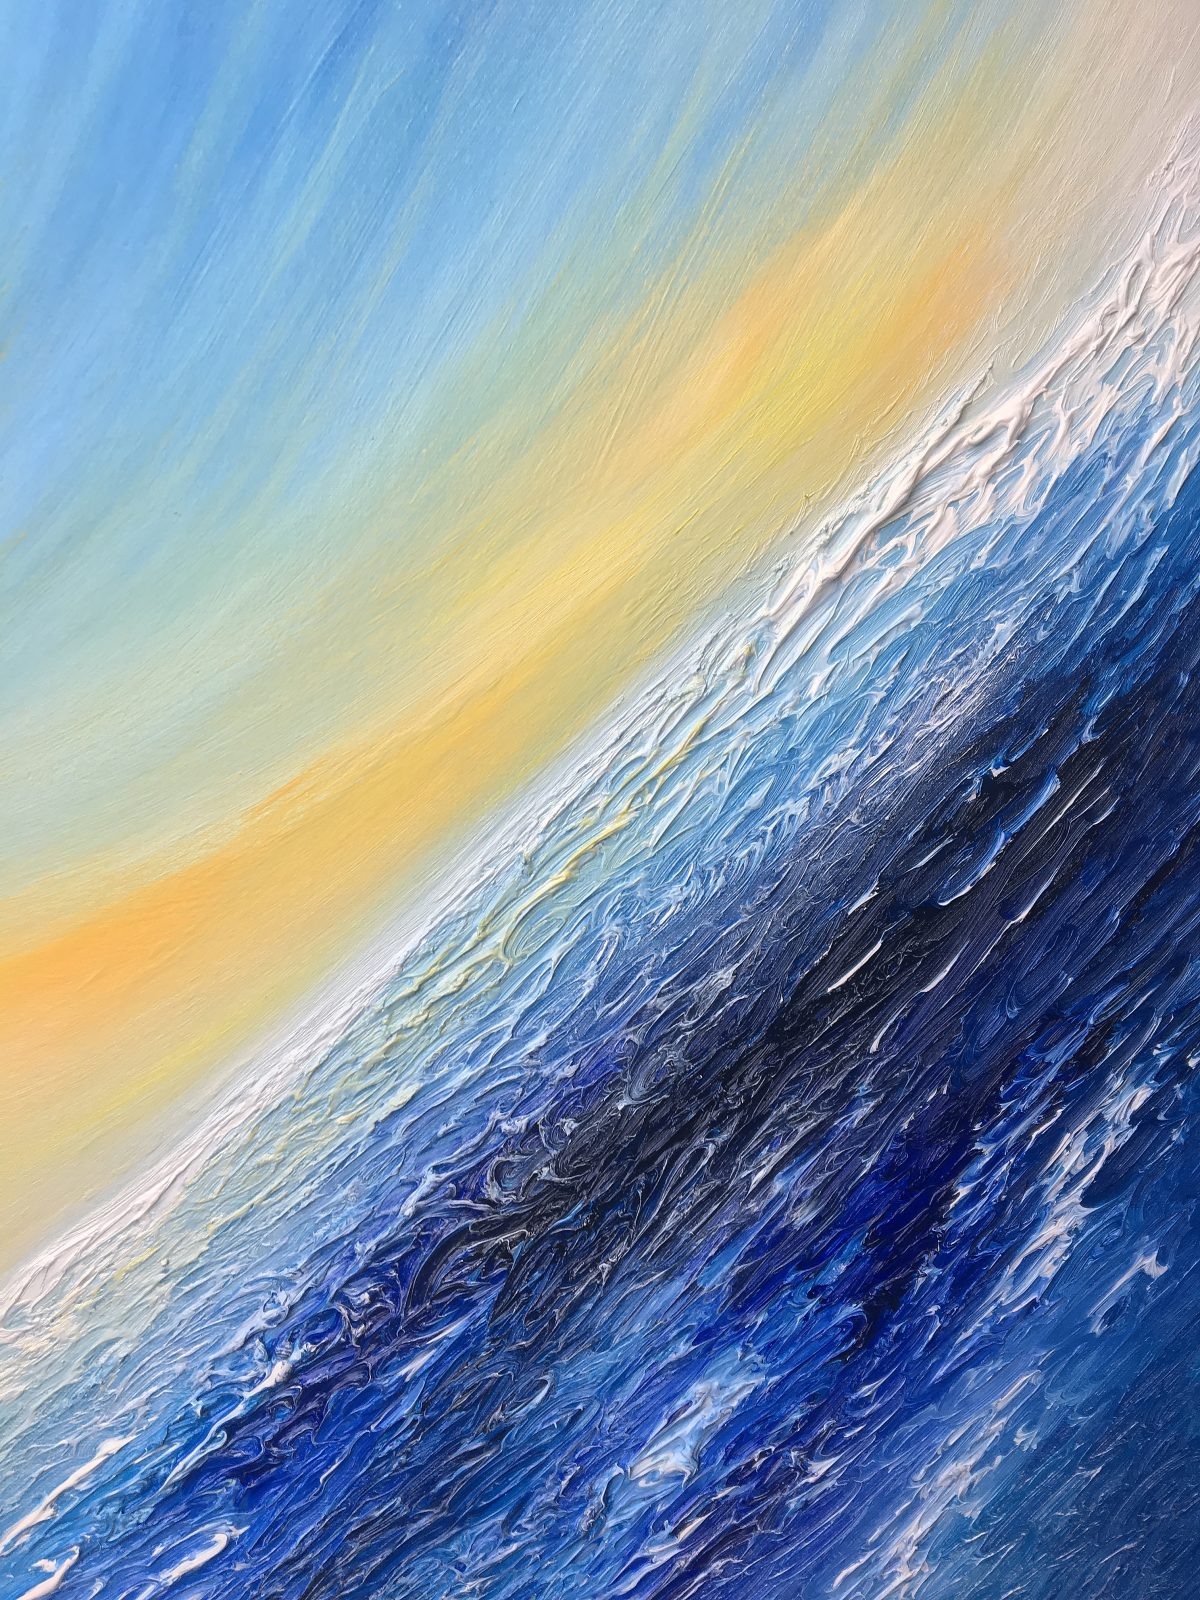 The Wave - oil on canvas abstract landscape painting (detail)